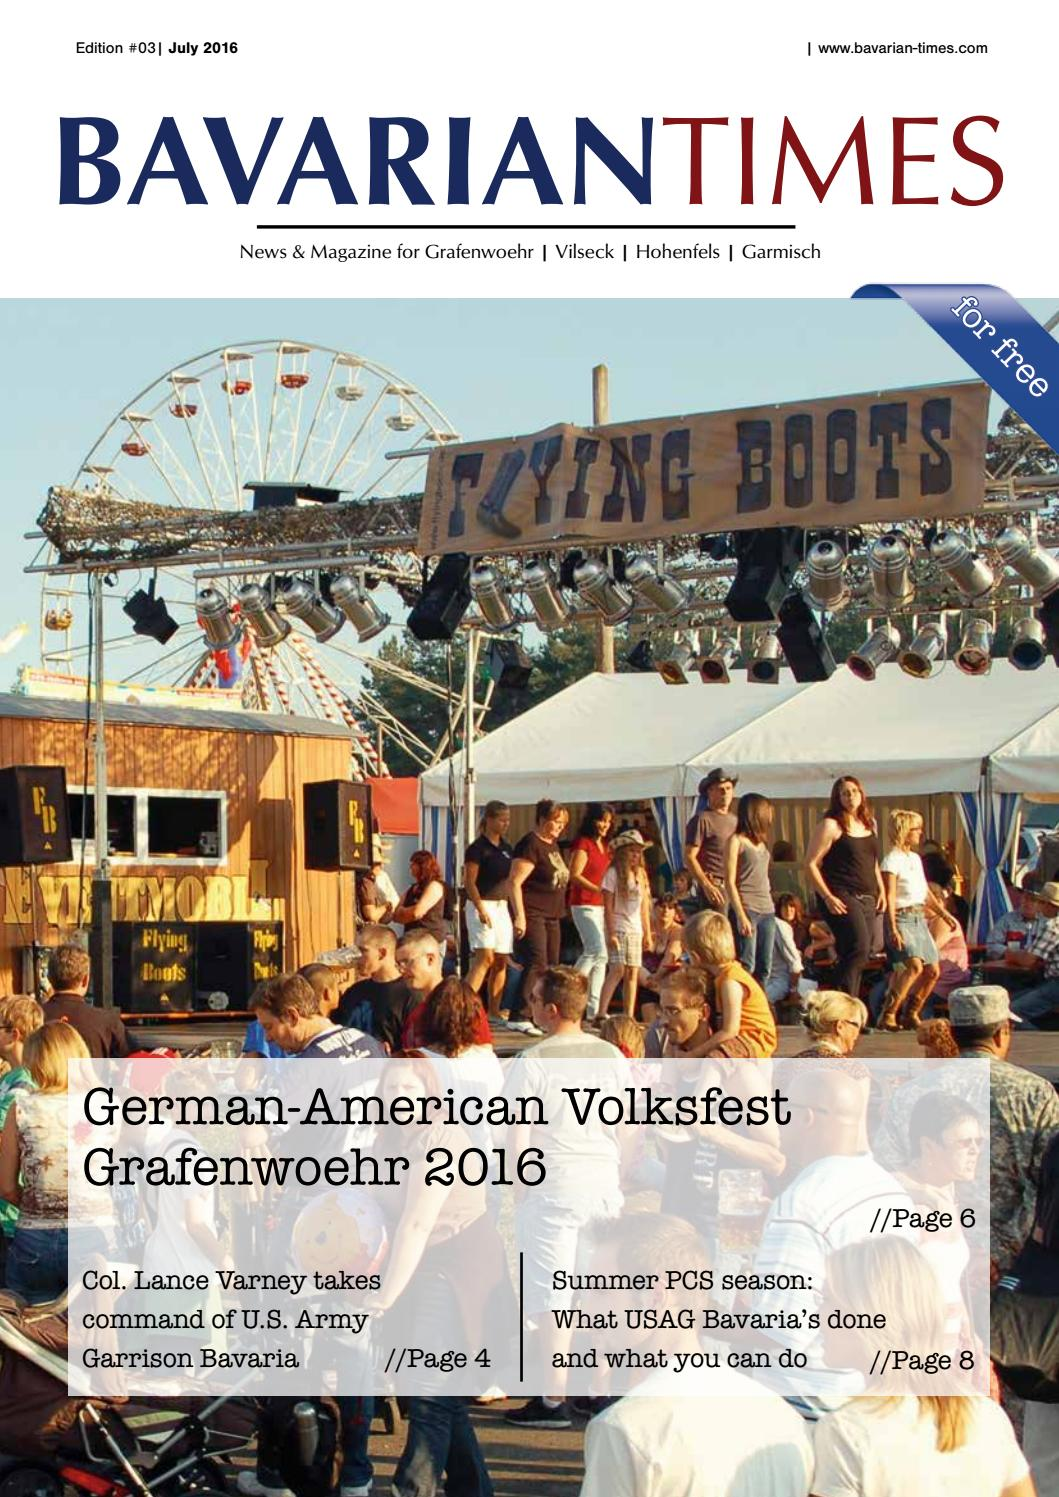 Bavarian Times Magazine - Edition 03 - July 2016 by Bavarian Times Magazine  - issuu